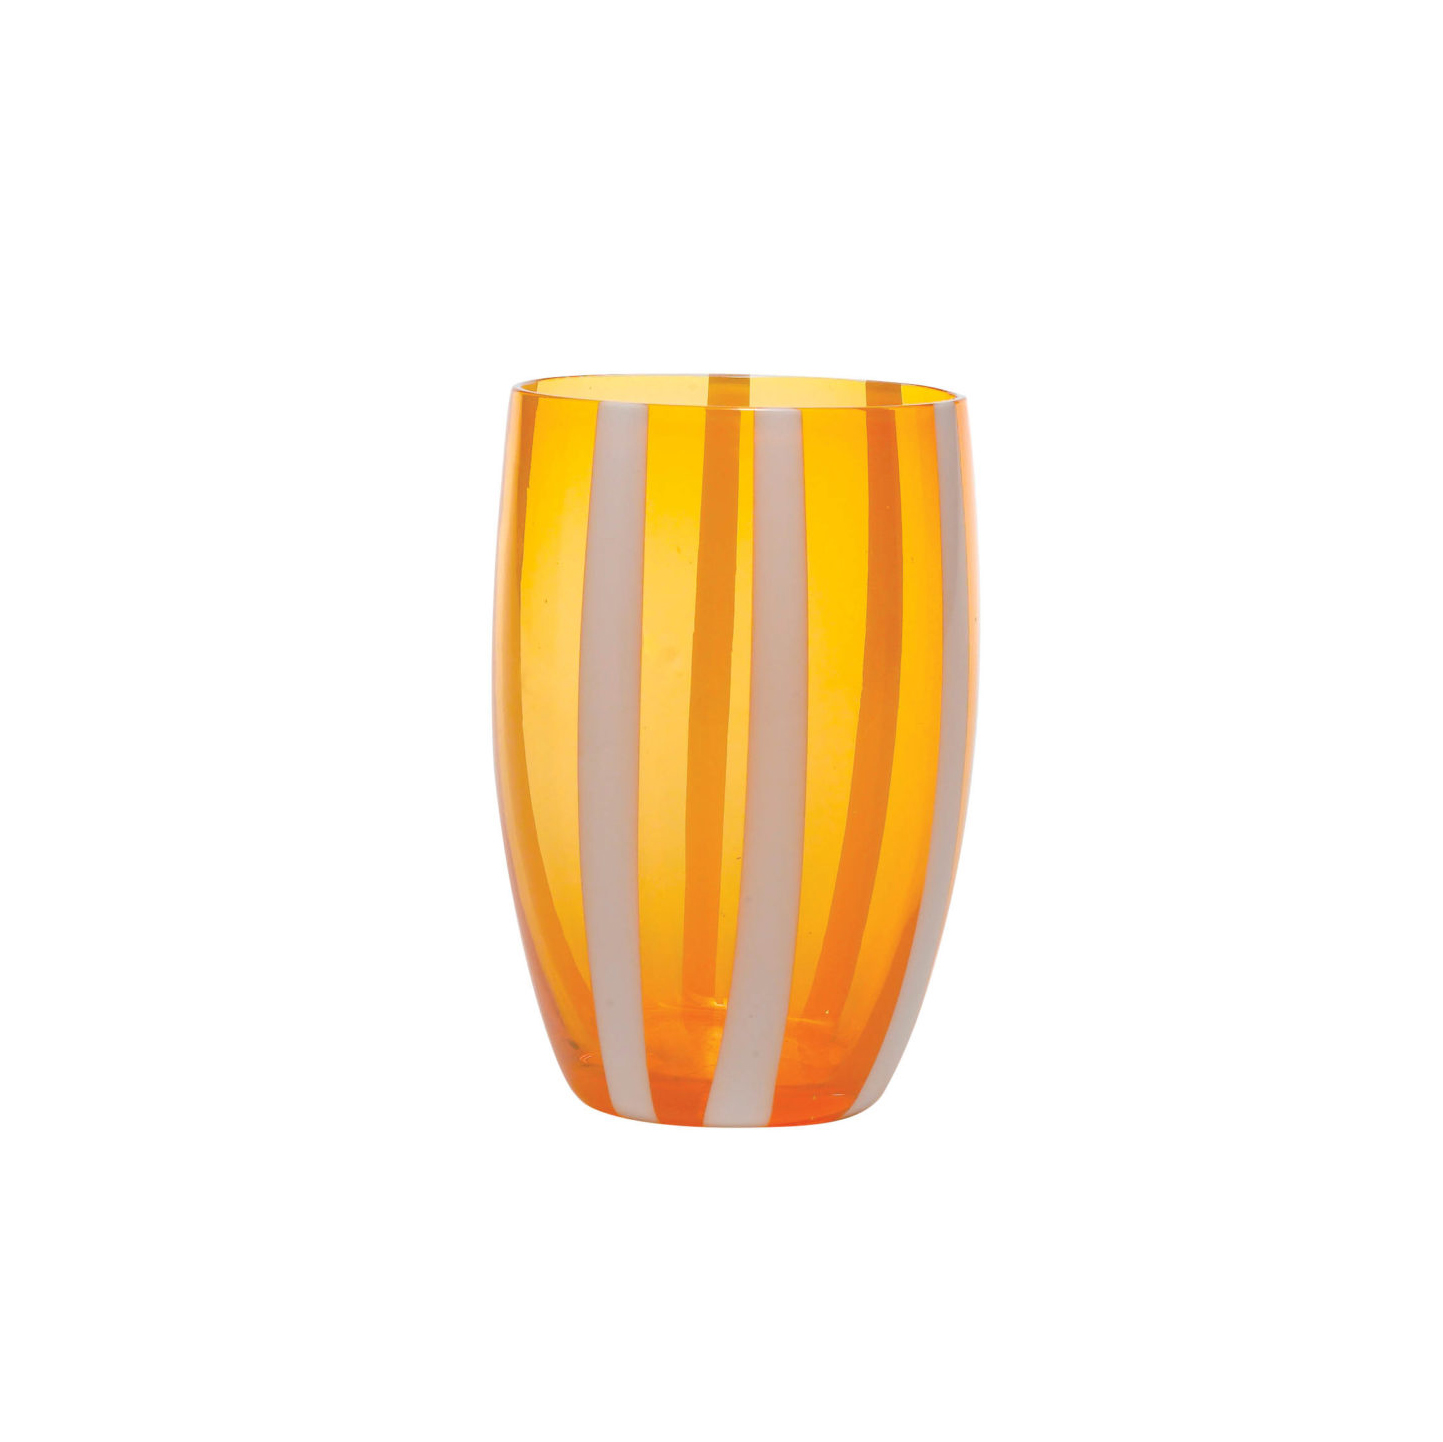 Gessato Tumbler in Orange